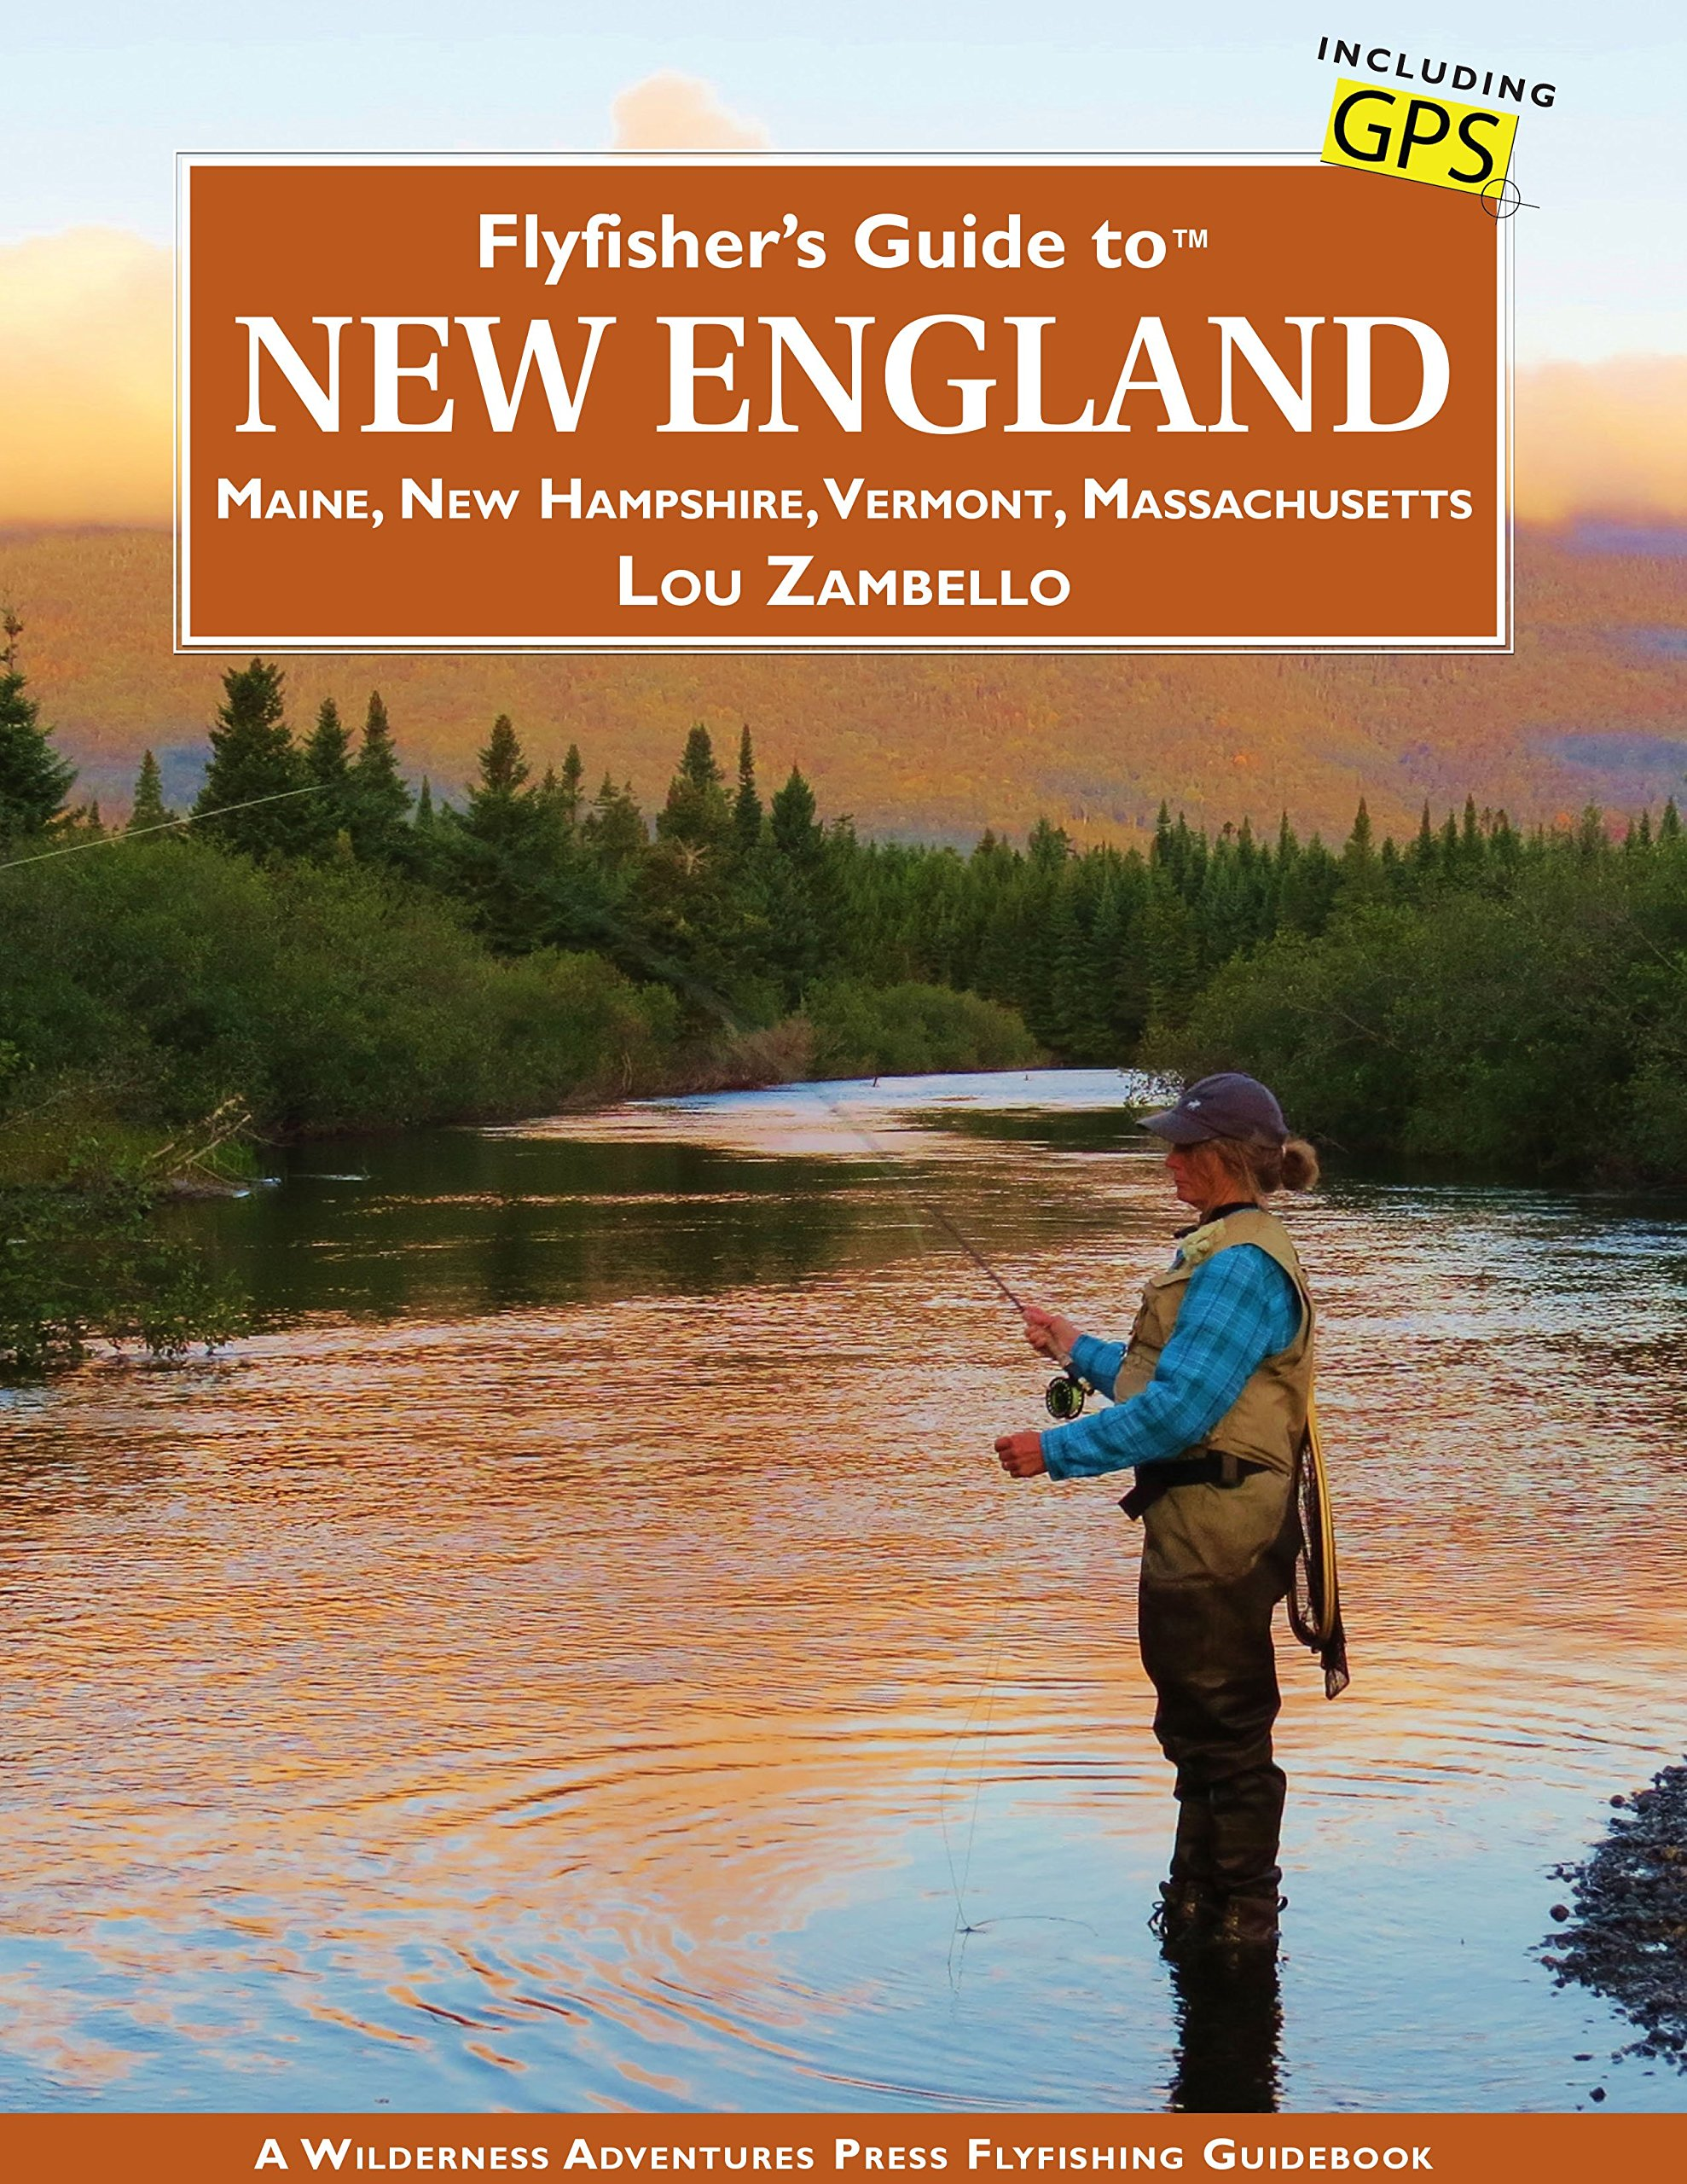 Download Flyfisher's Guide To New England 